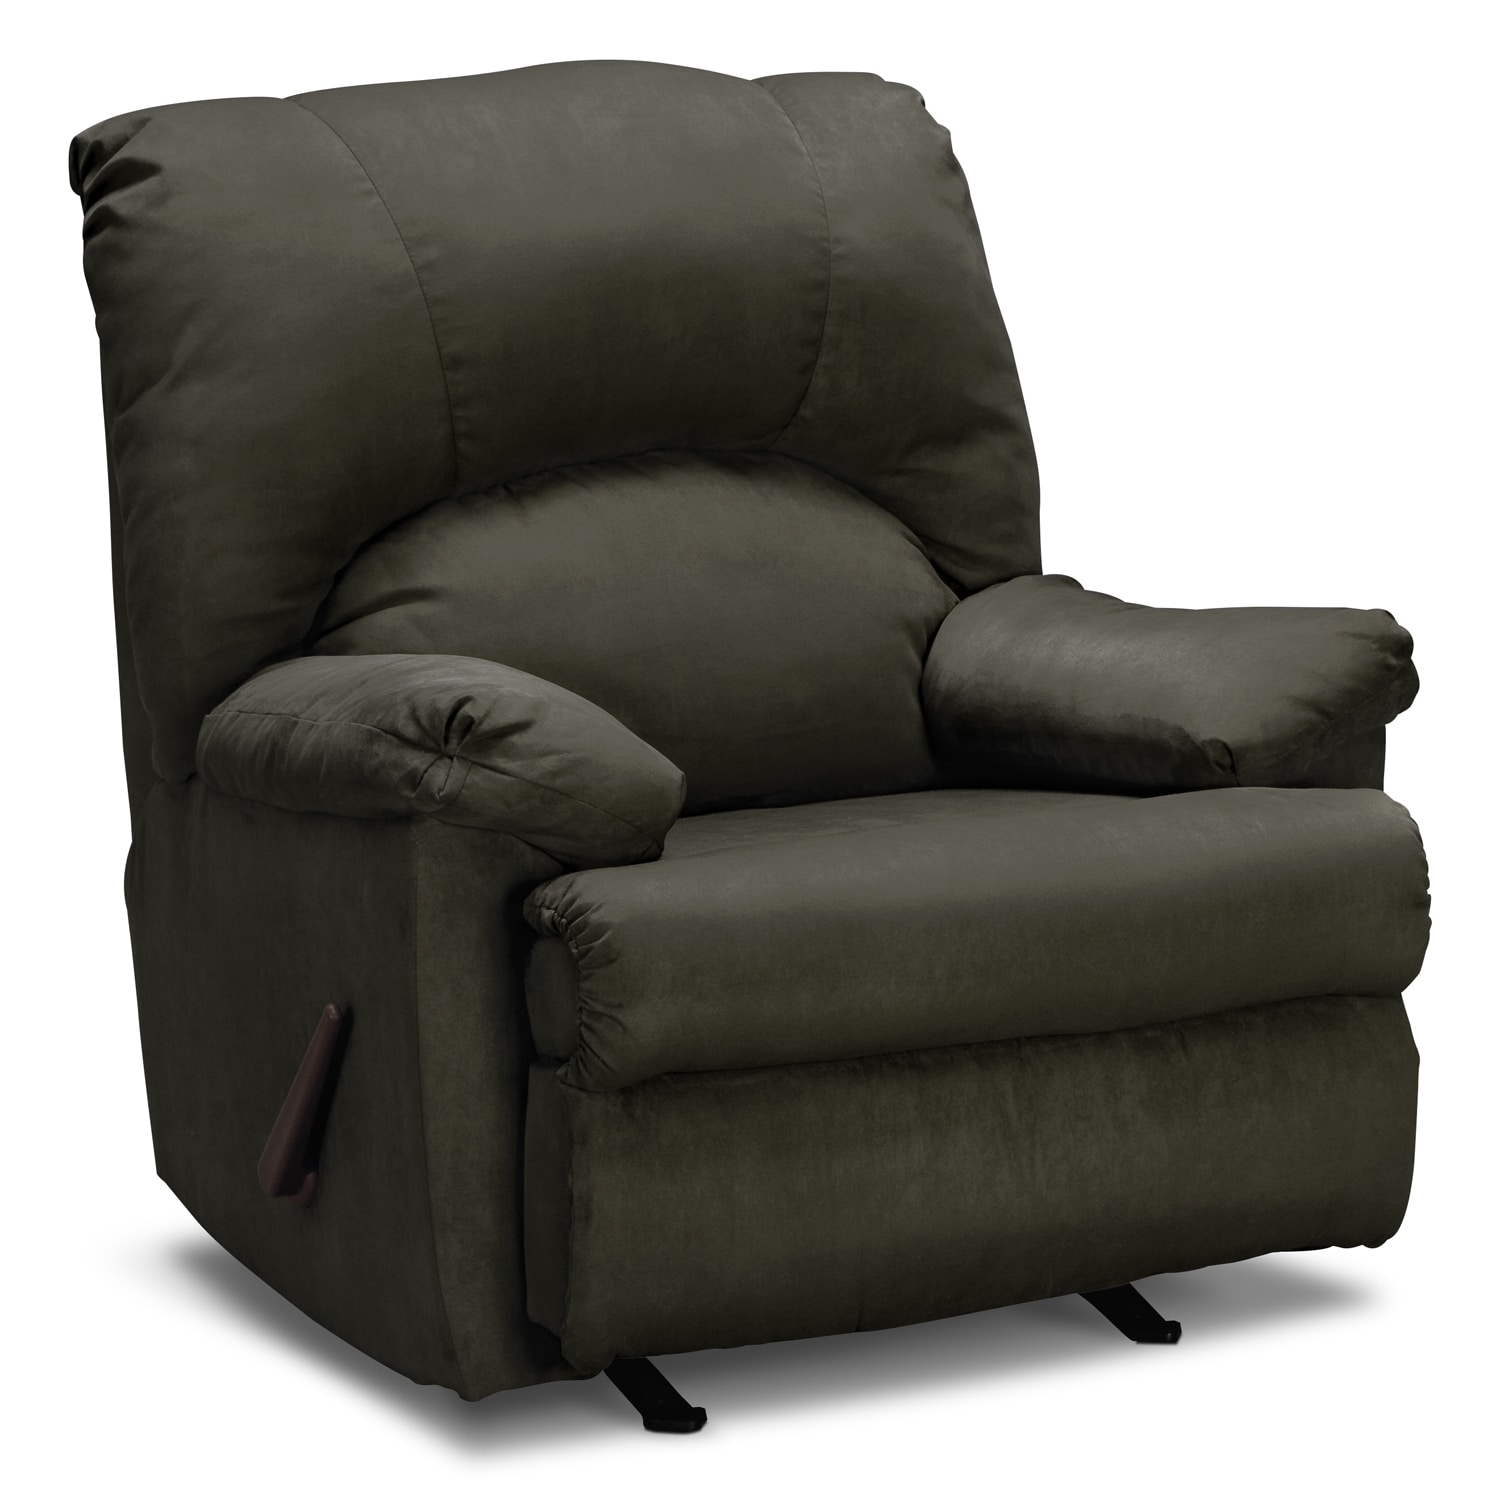 Quincy Rocker Recliner   Loden